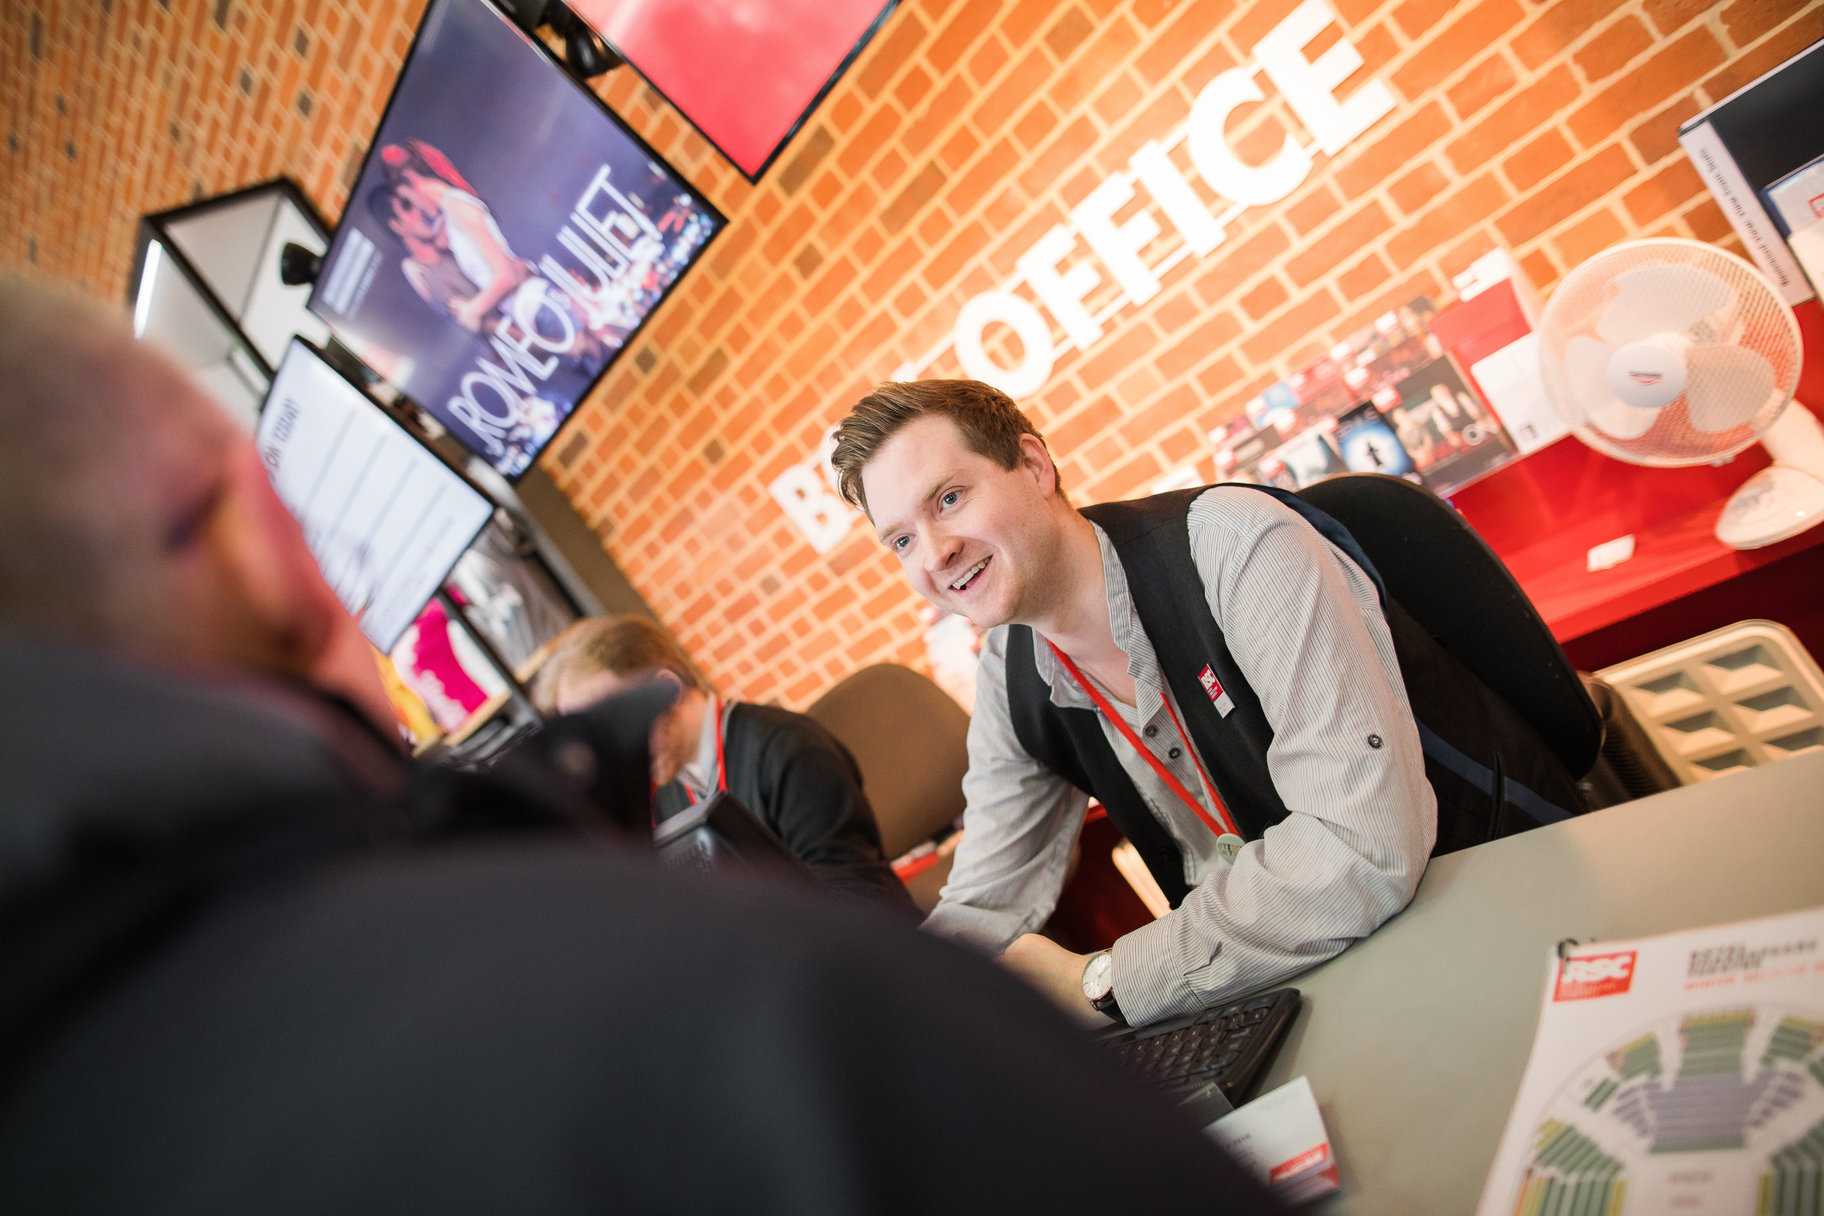 Smiling man in waistcoat helping someone at Box Office